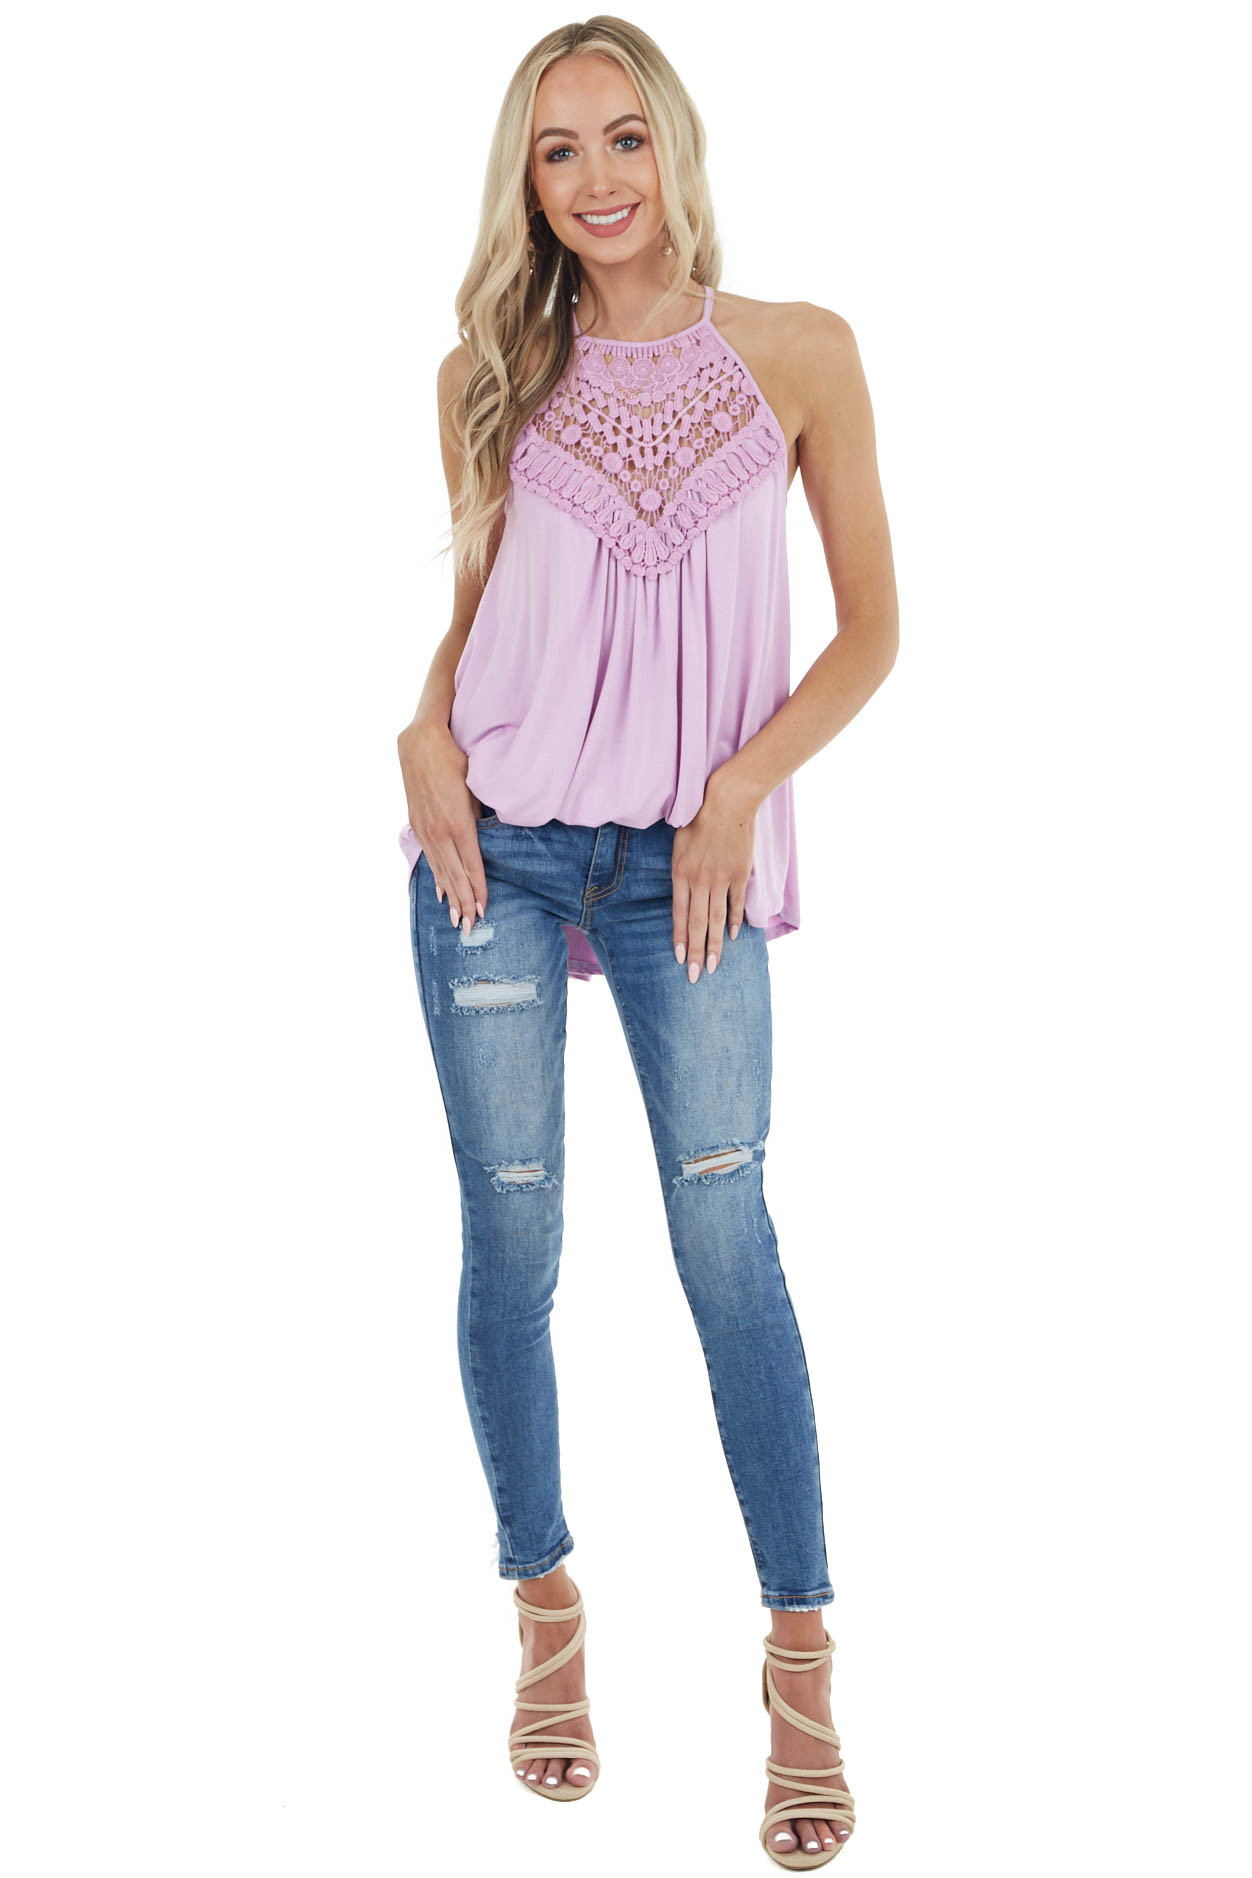 Pale Fuchsia Tank Top with Sheer Lace Chest